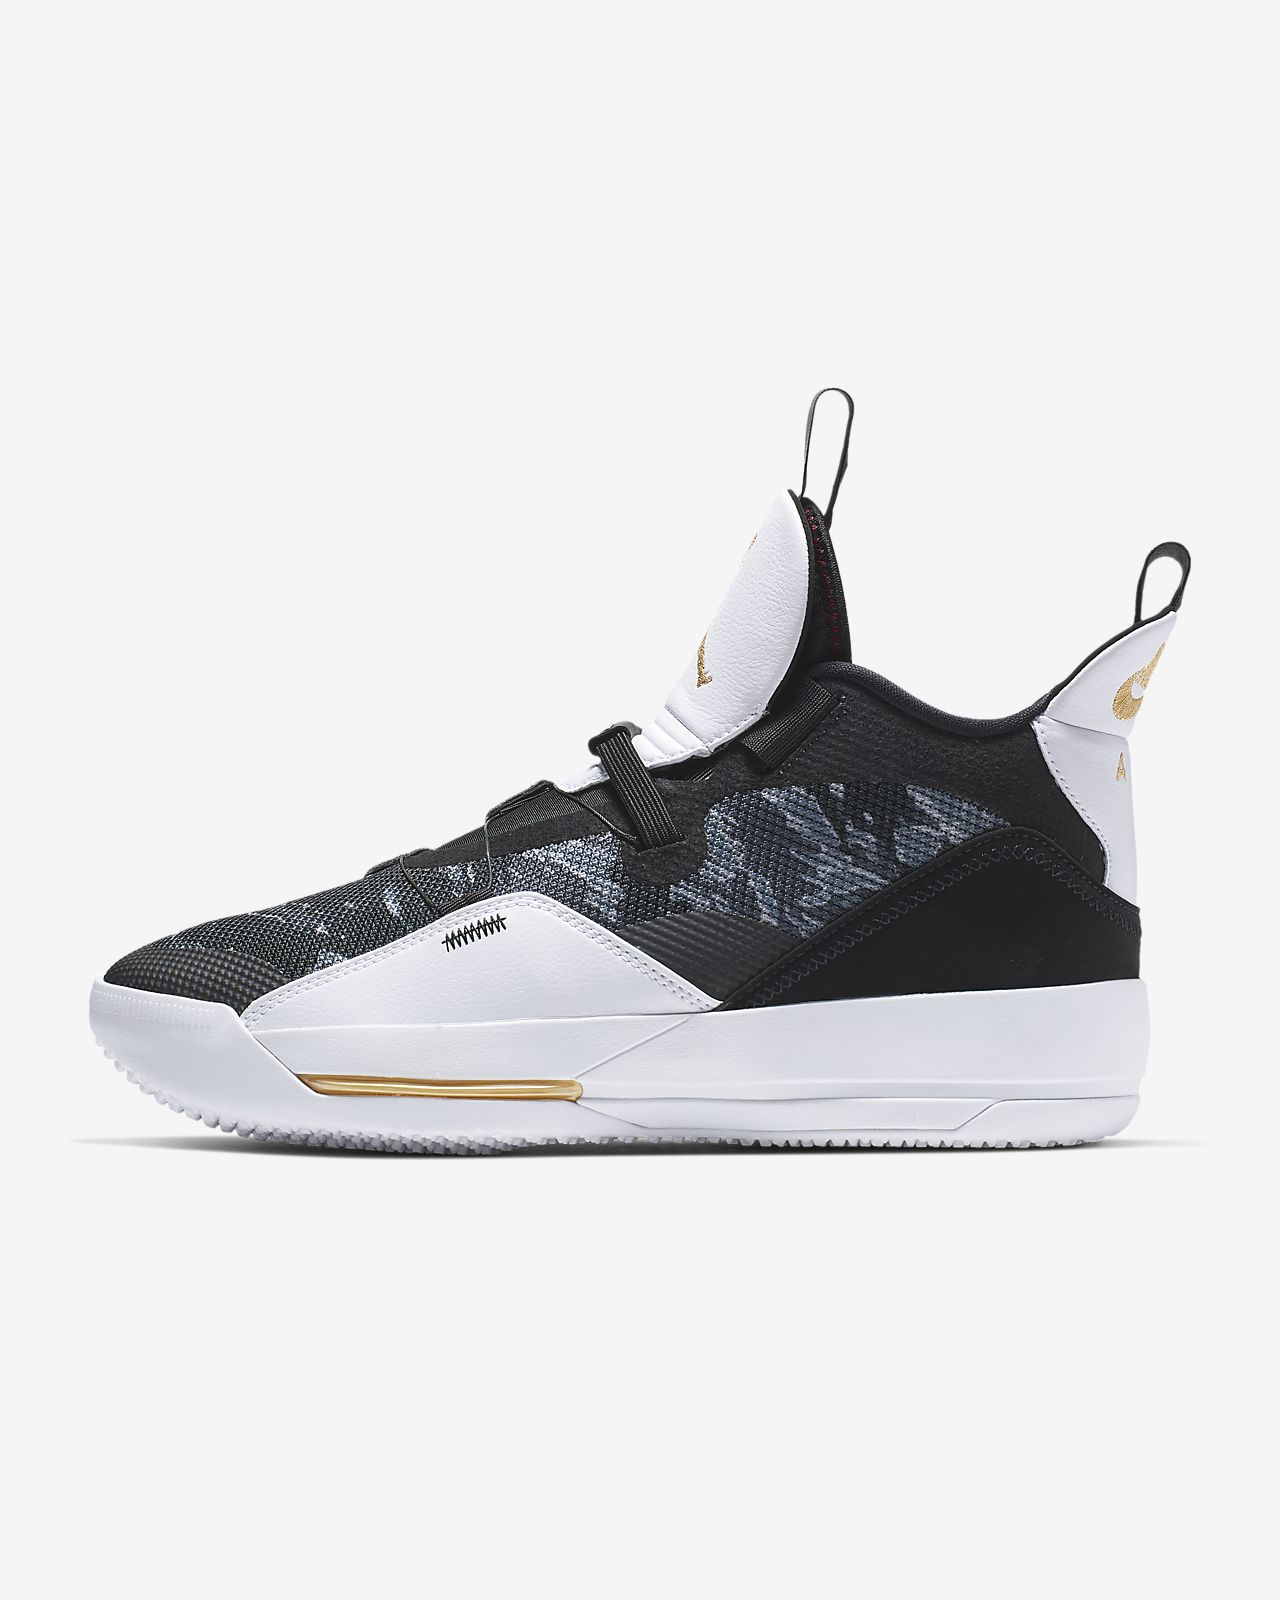 9f5db20ba8f1 Air Jordan XXXIII Basketball Shoe. Nike.com